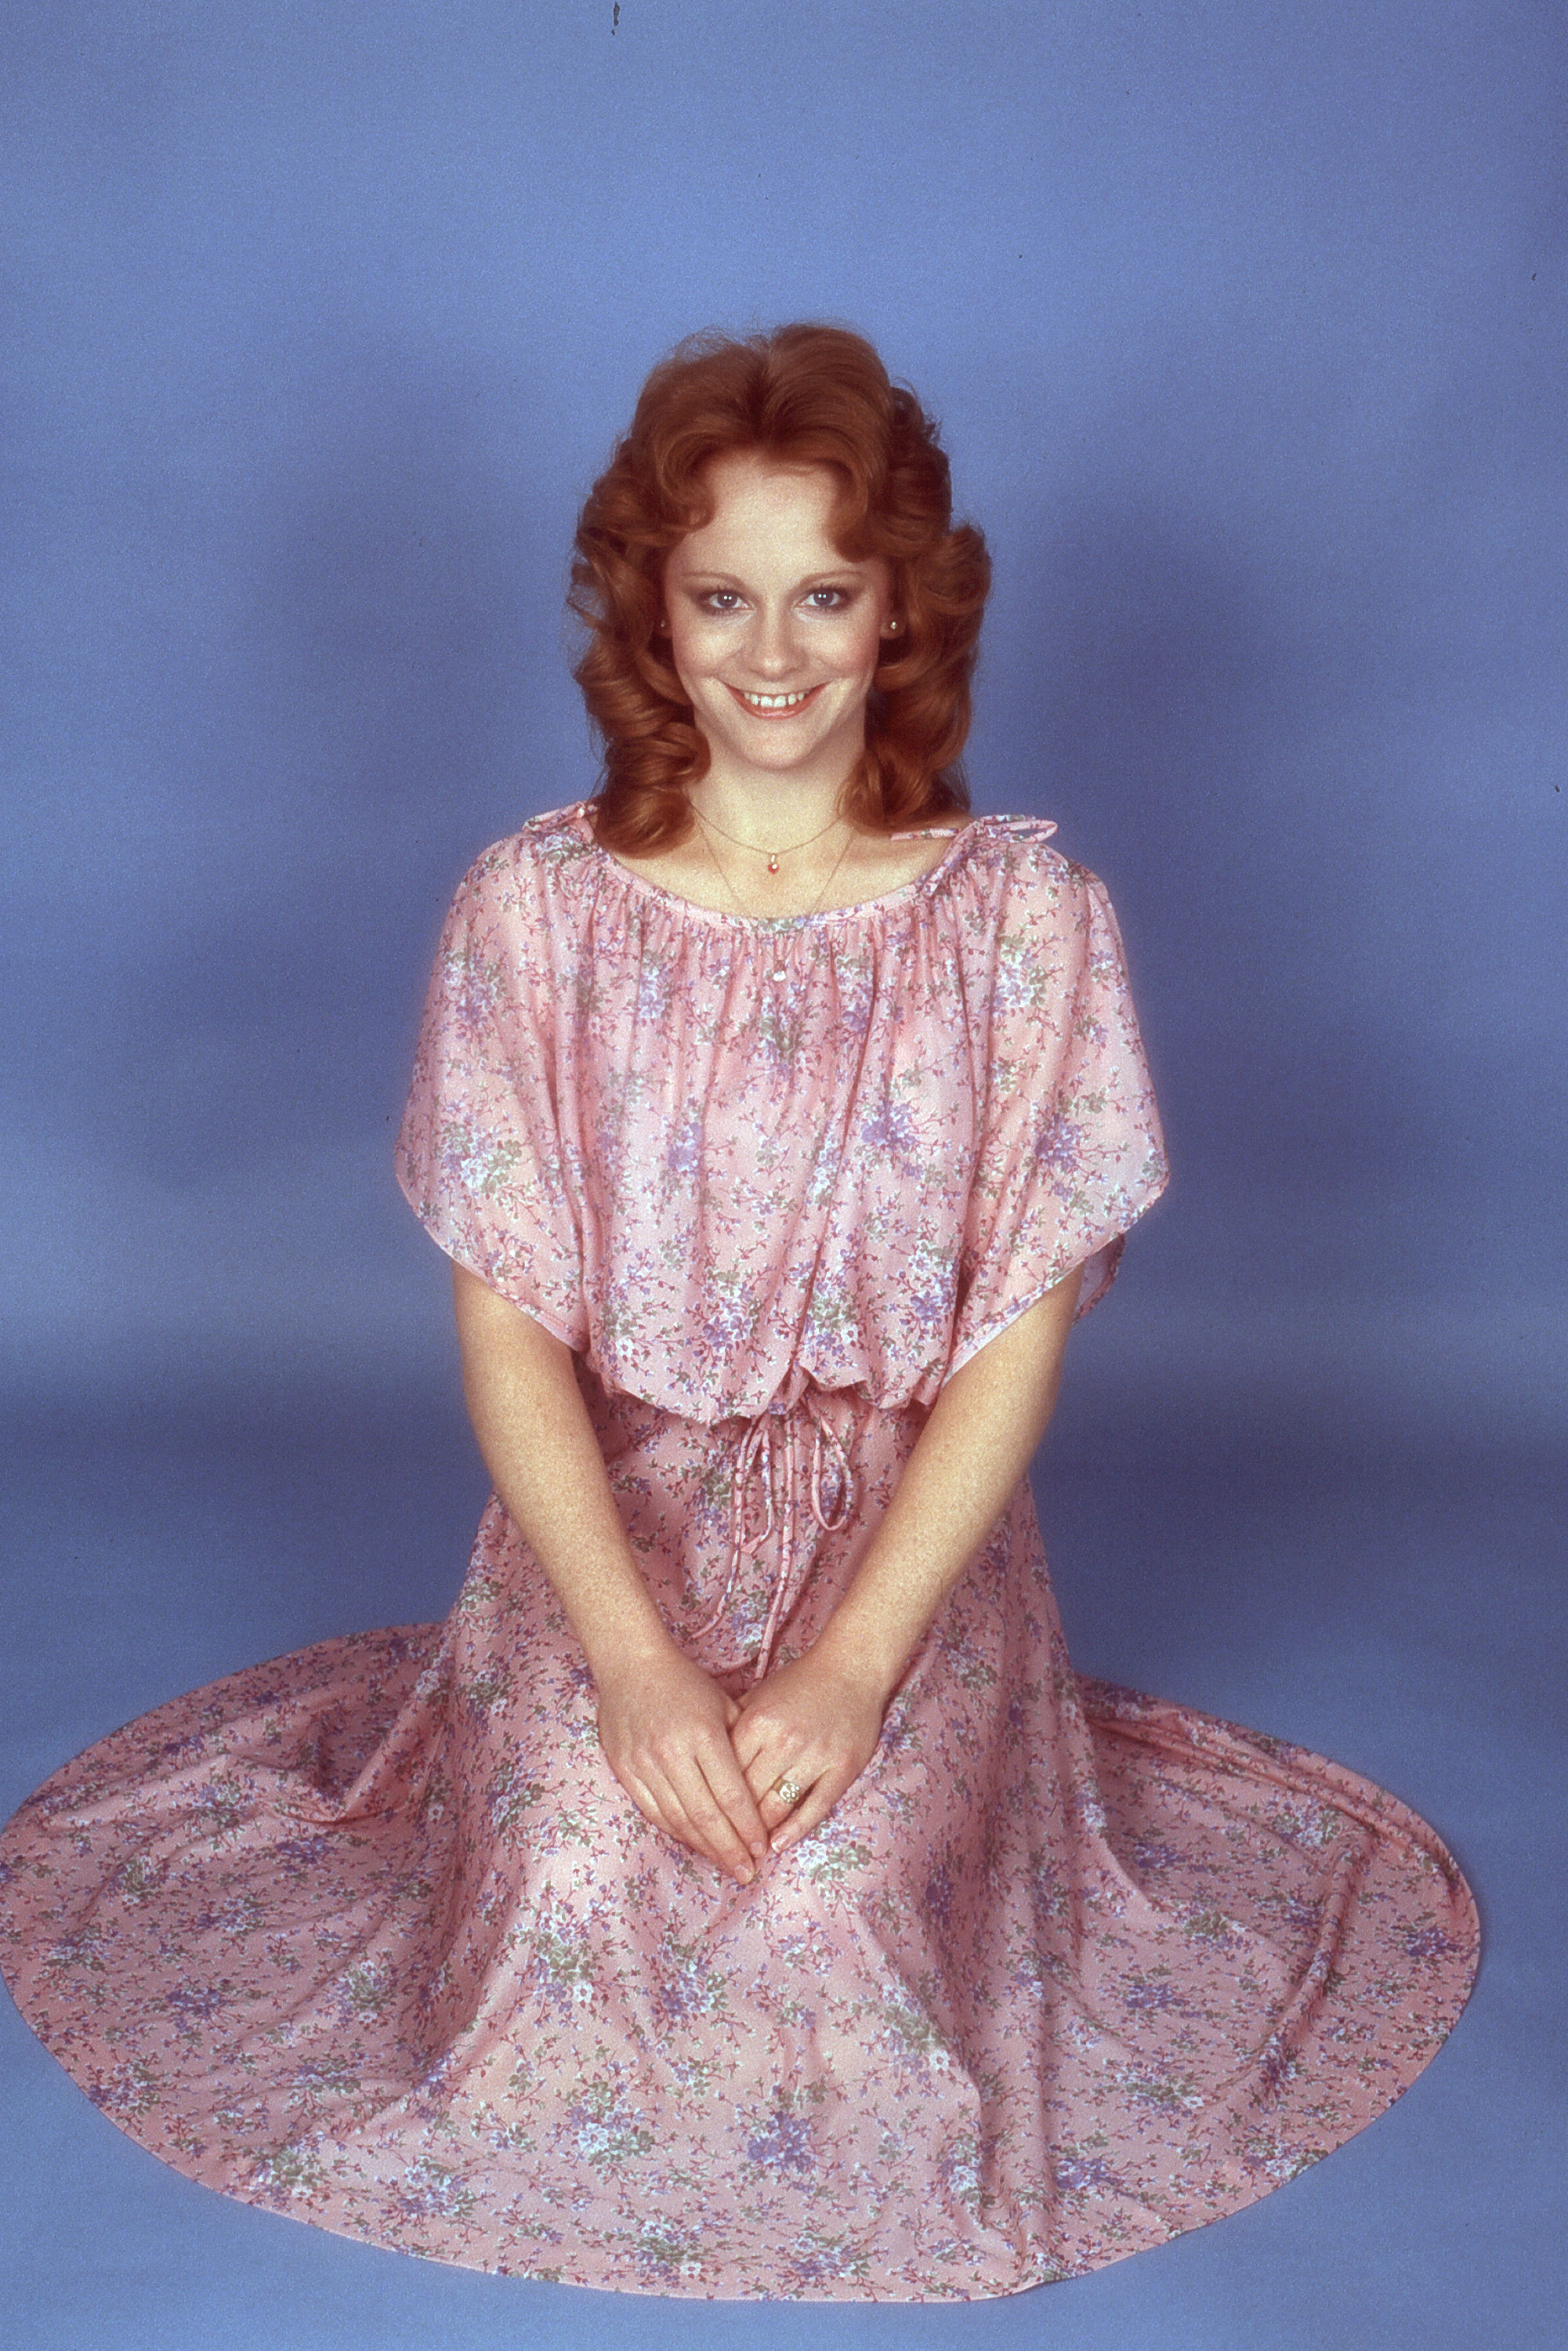 Reba McEntire's Country Roots Run Deep